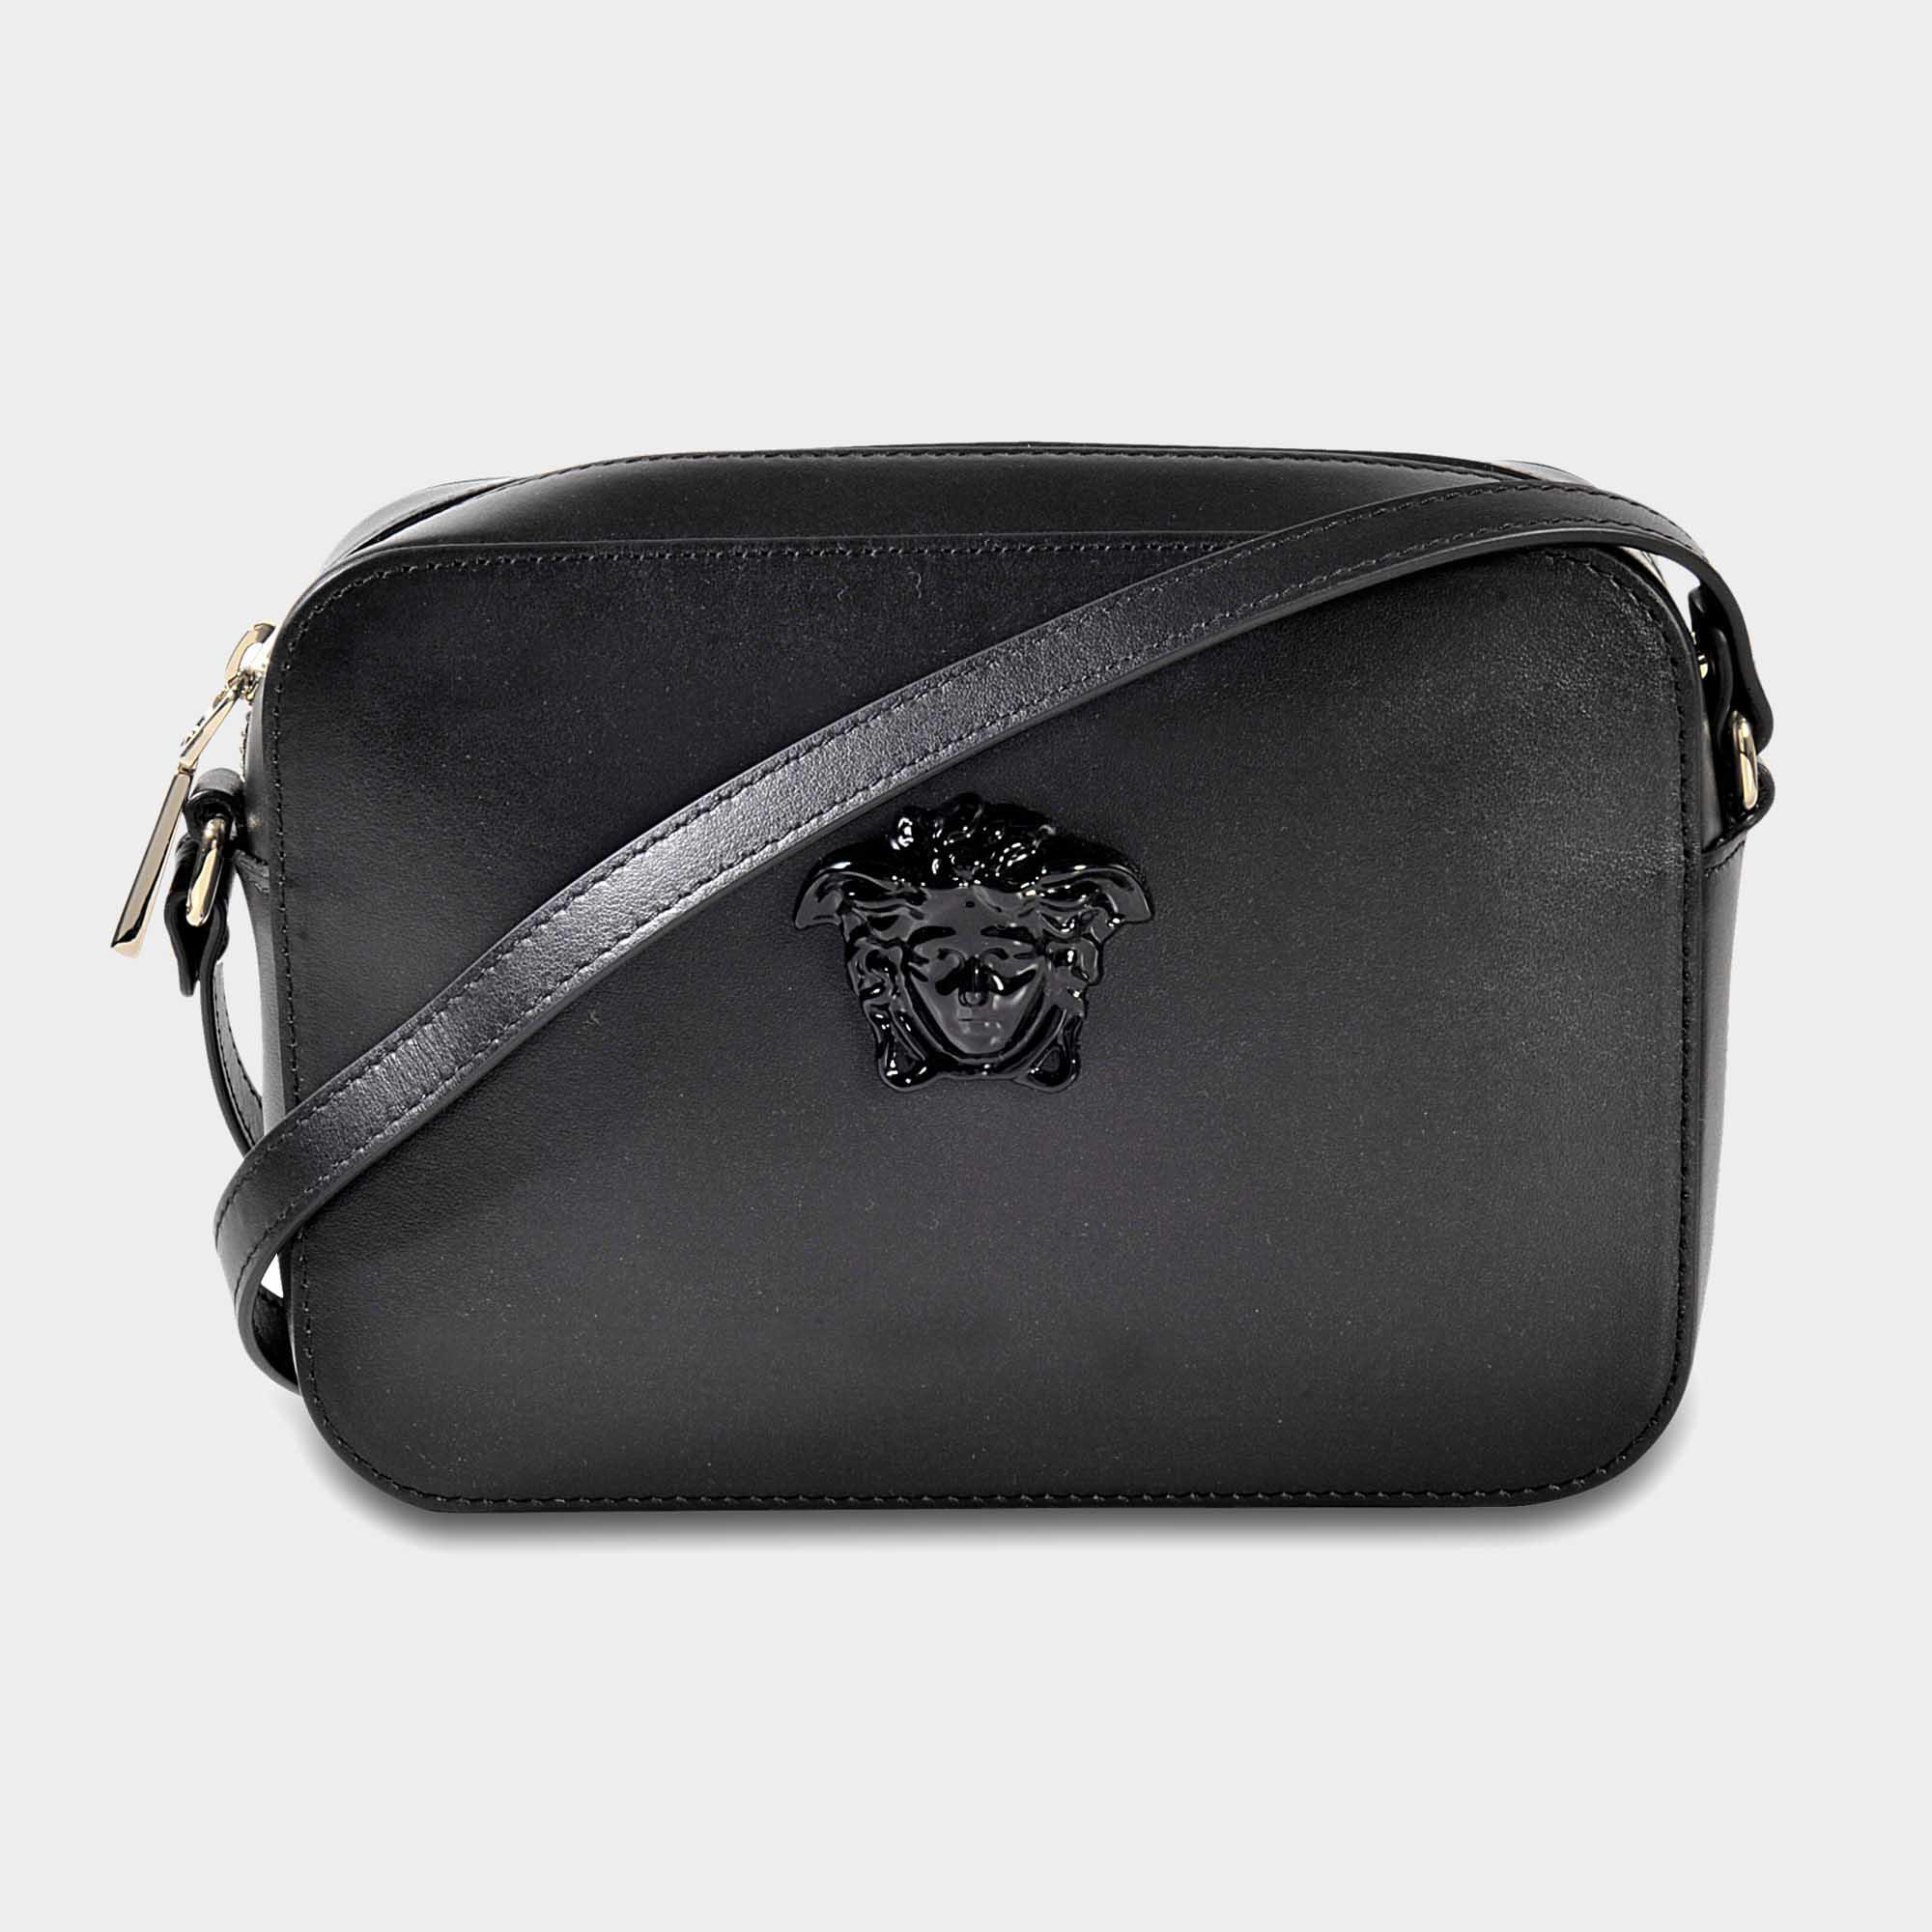 837b6d7ad2b7 Lyst - Versace Palazzo Camera Bag in Black